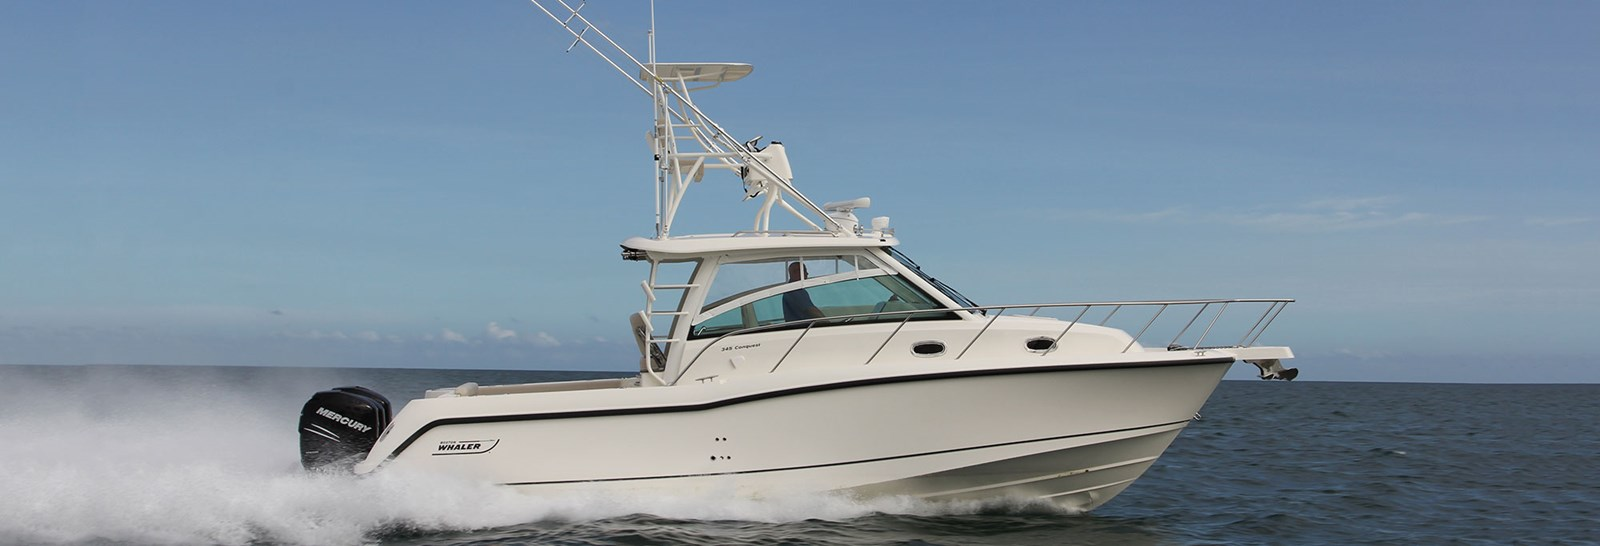 Boston-Whaler-345-Conquest 2015 BOSTON WHALER 345 Conquest Sport Fisherman 2618531